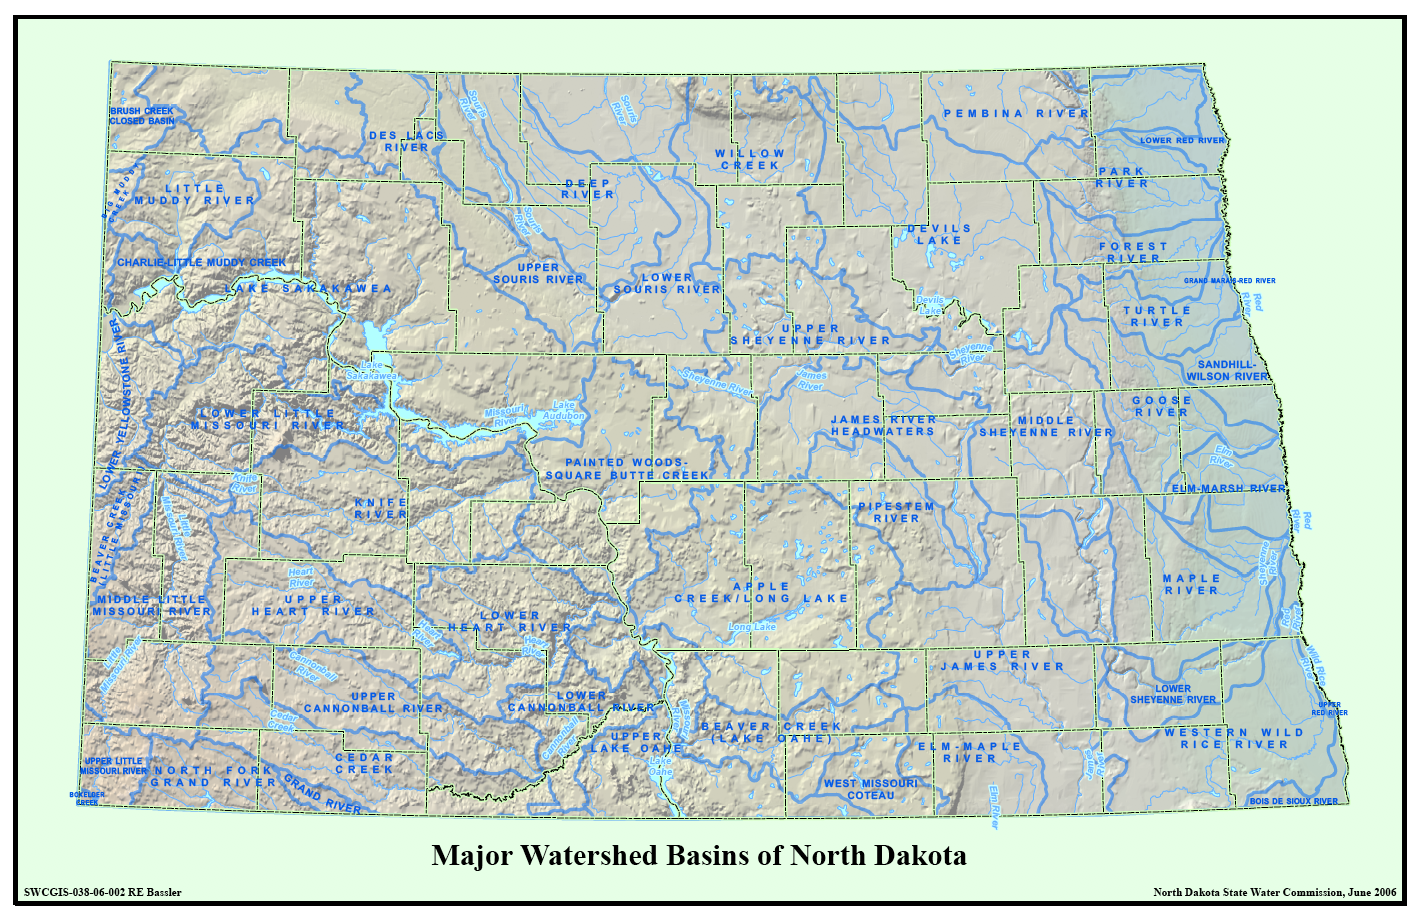 Major Drainage Sub-Basins of North Dakota